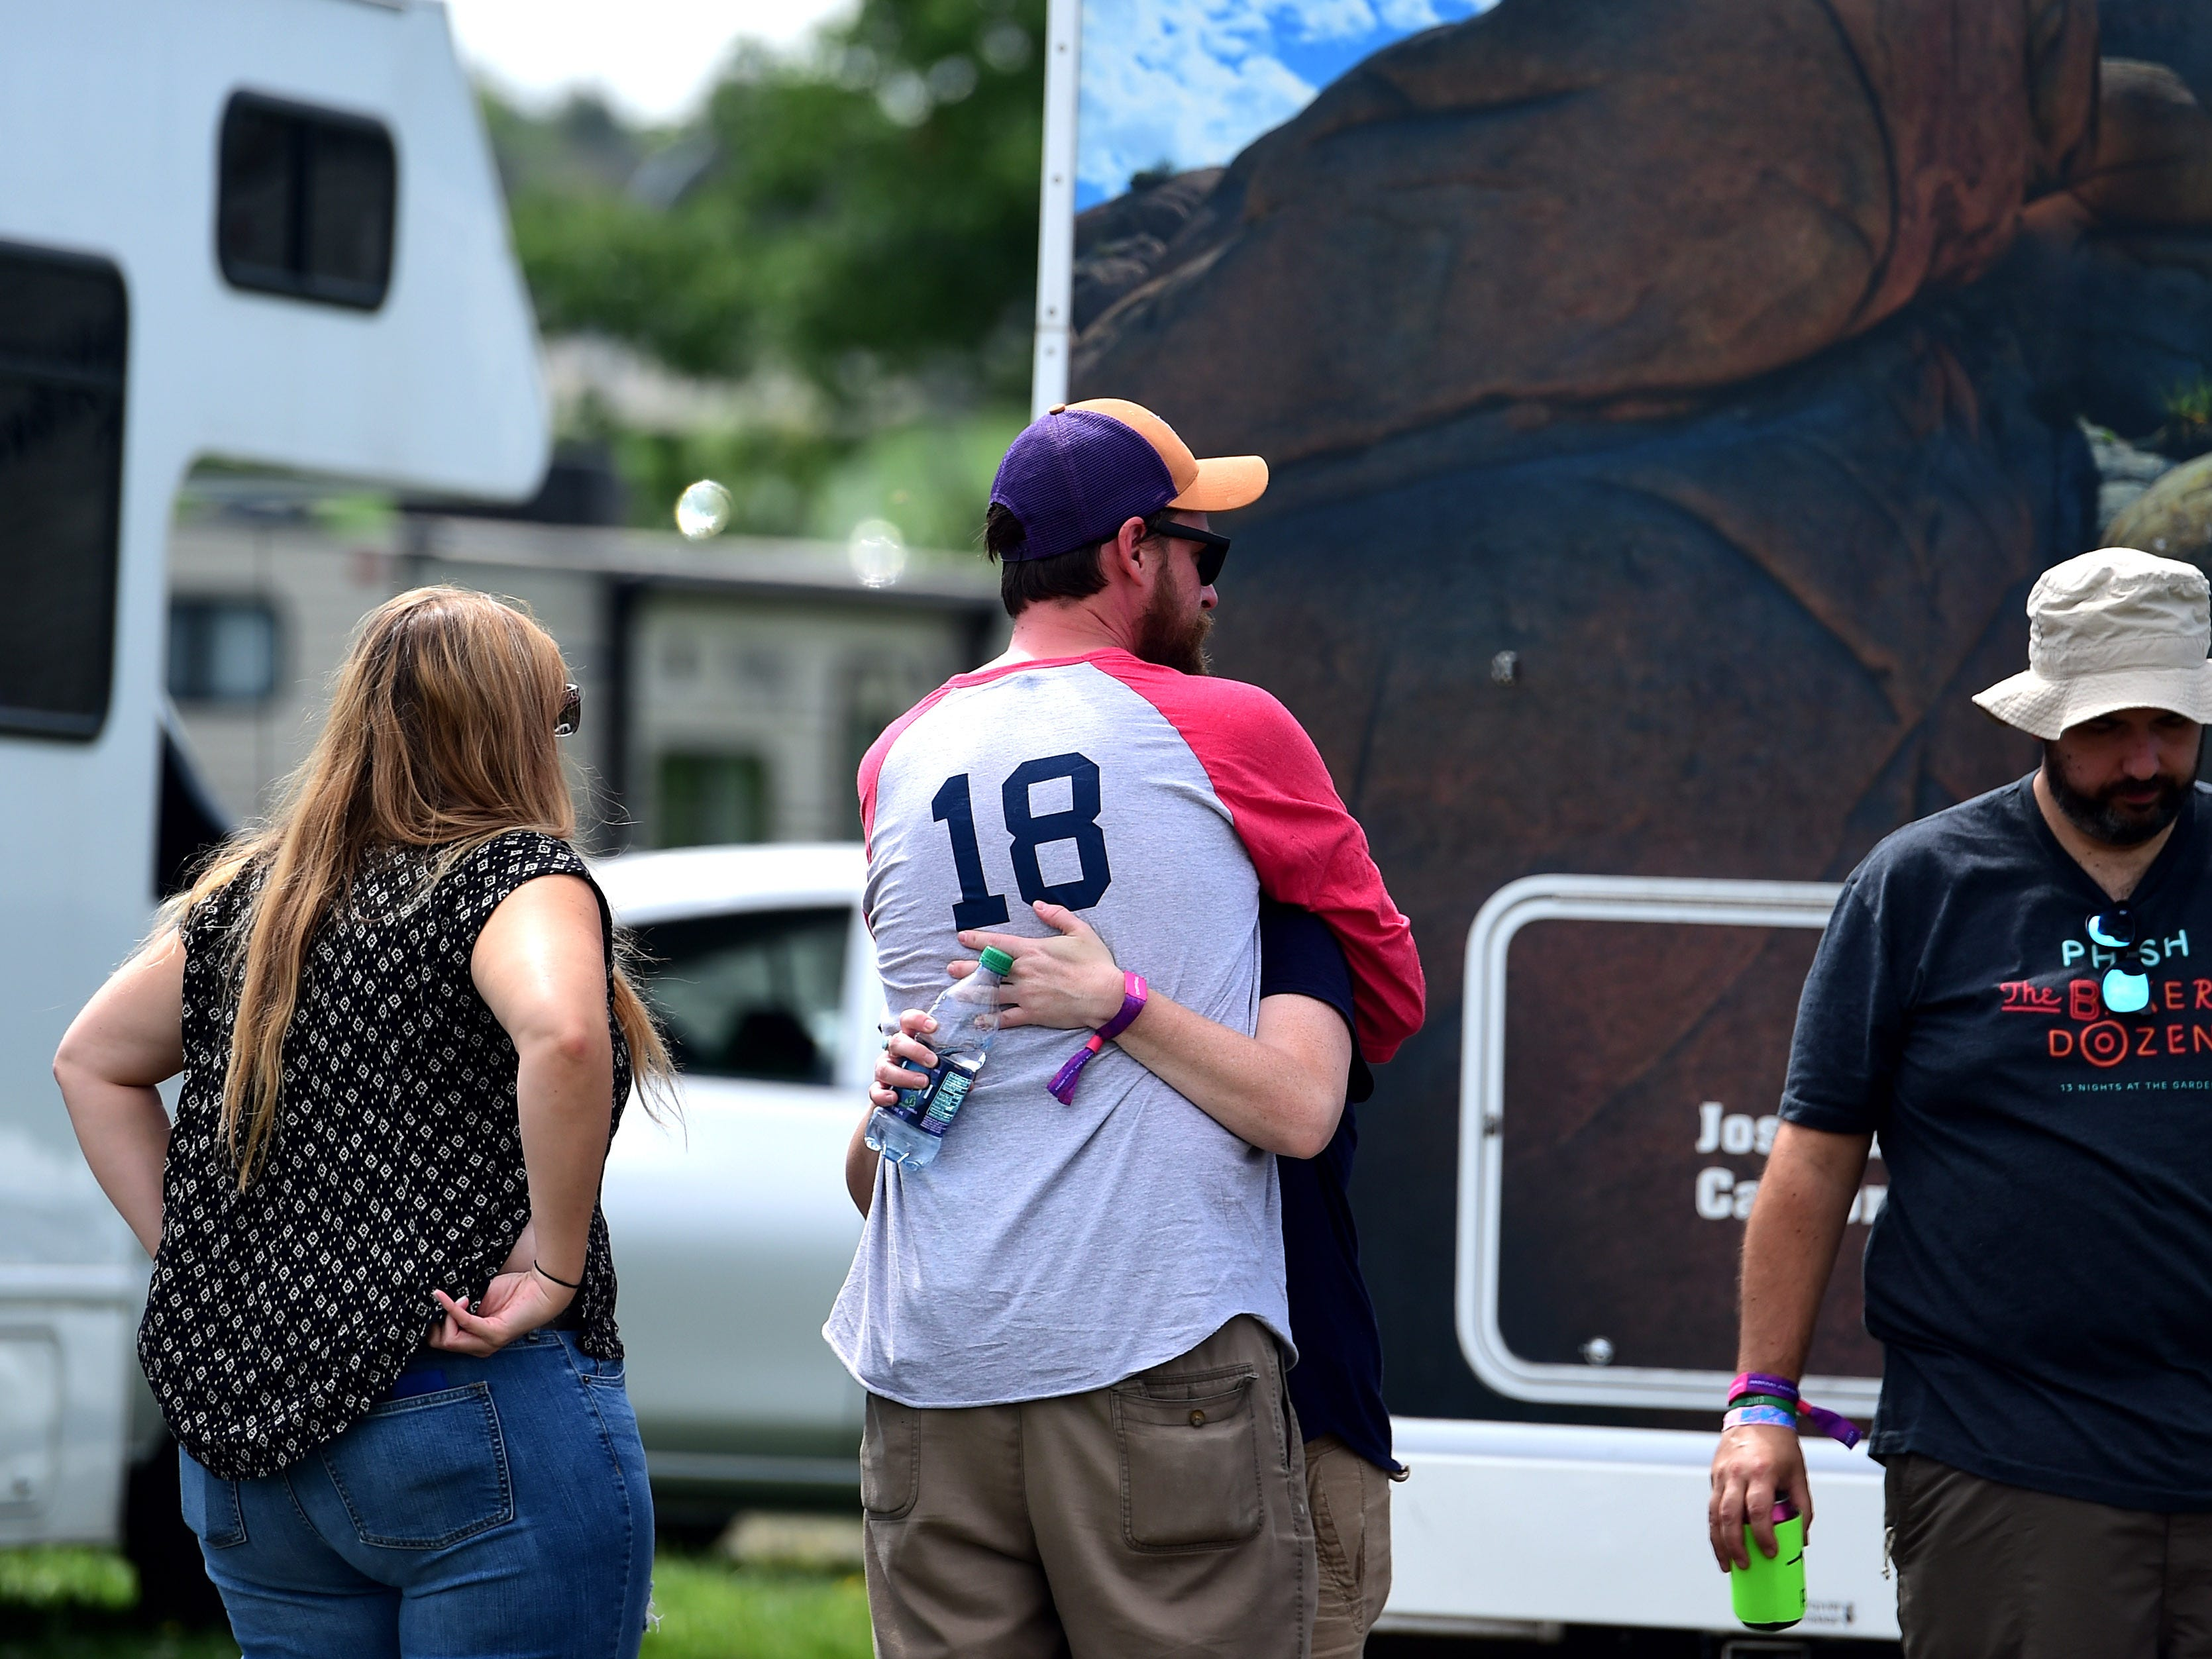 Phish fans hug goodbye at Watkins Glen International on Friday, August 17, 2018. The three-day Curveball Festival was cancelled on Thursday night due to water quality issues on the site.